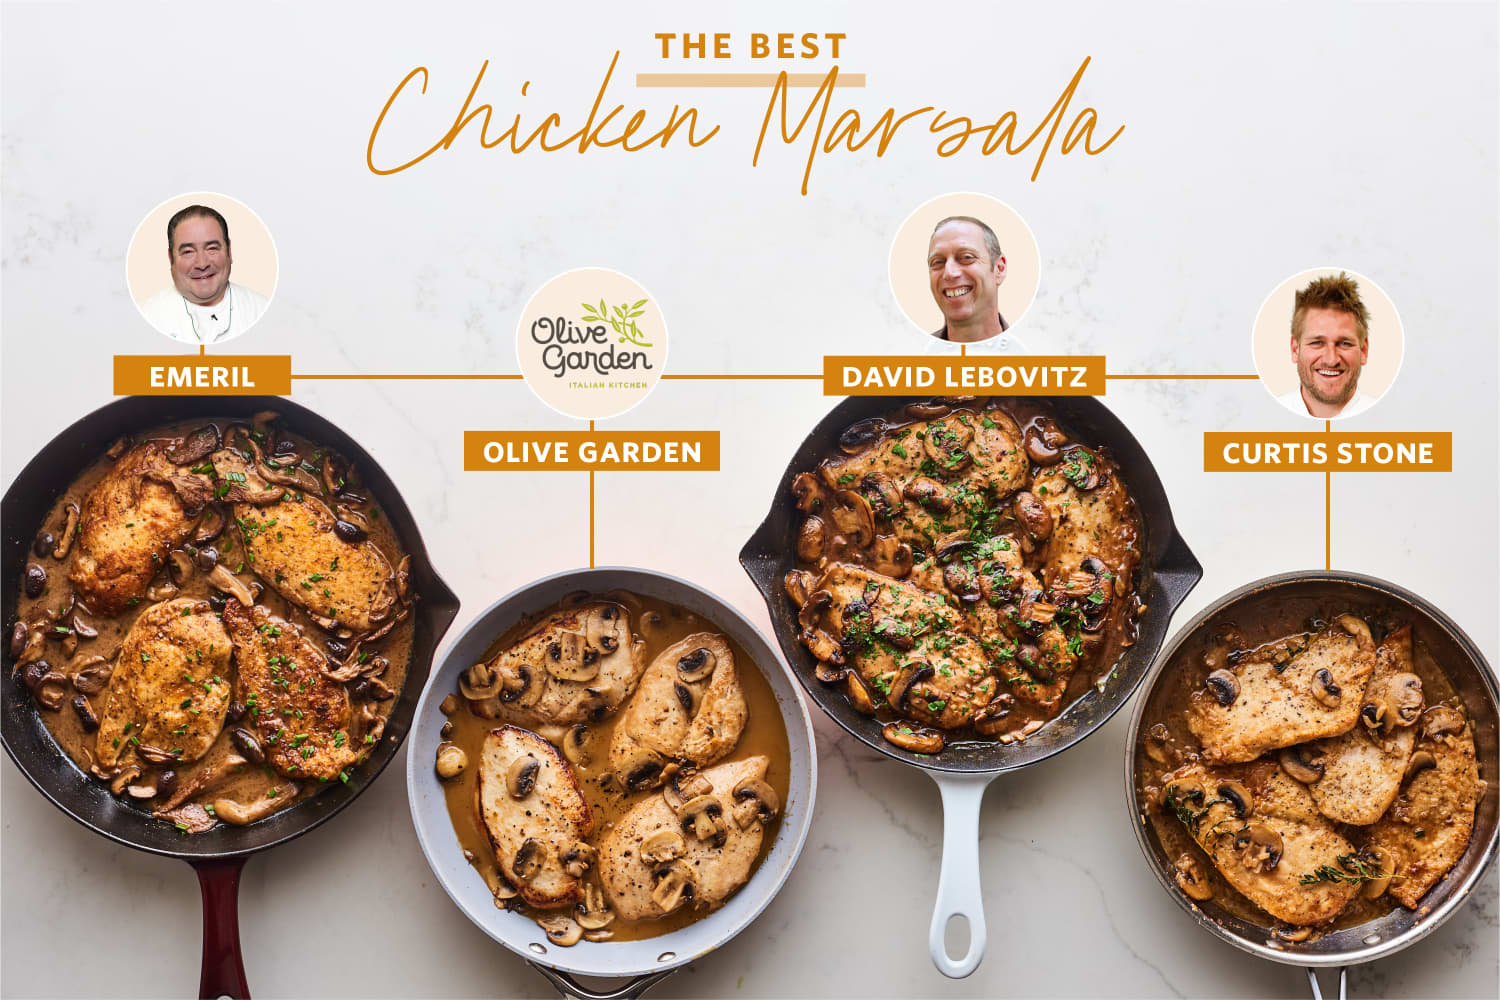 We Tested 4 Famous Chicken Marsala Recipes and Found a Clear Winner